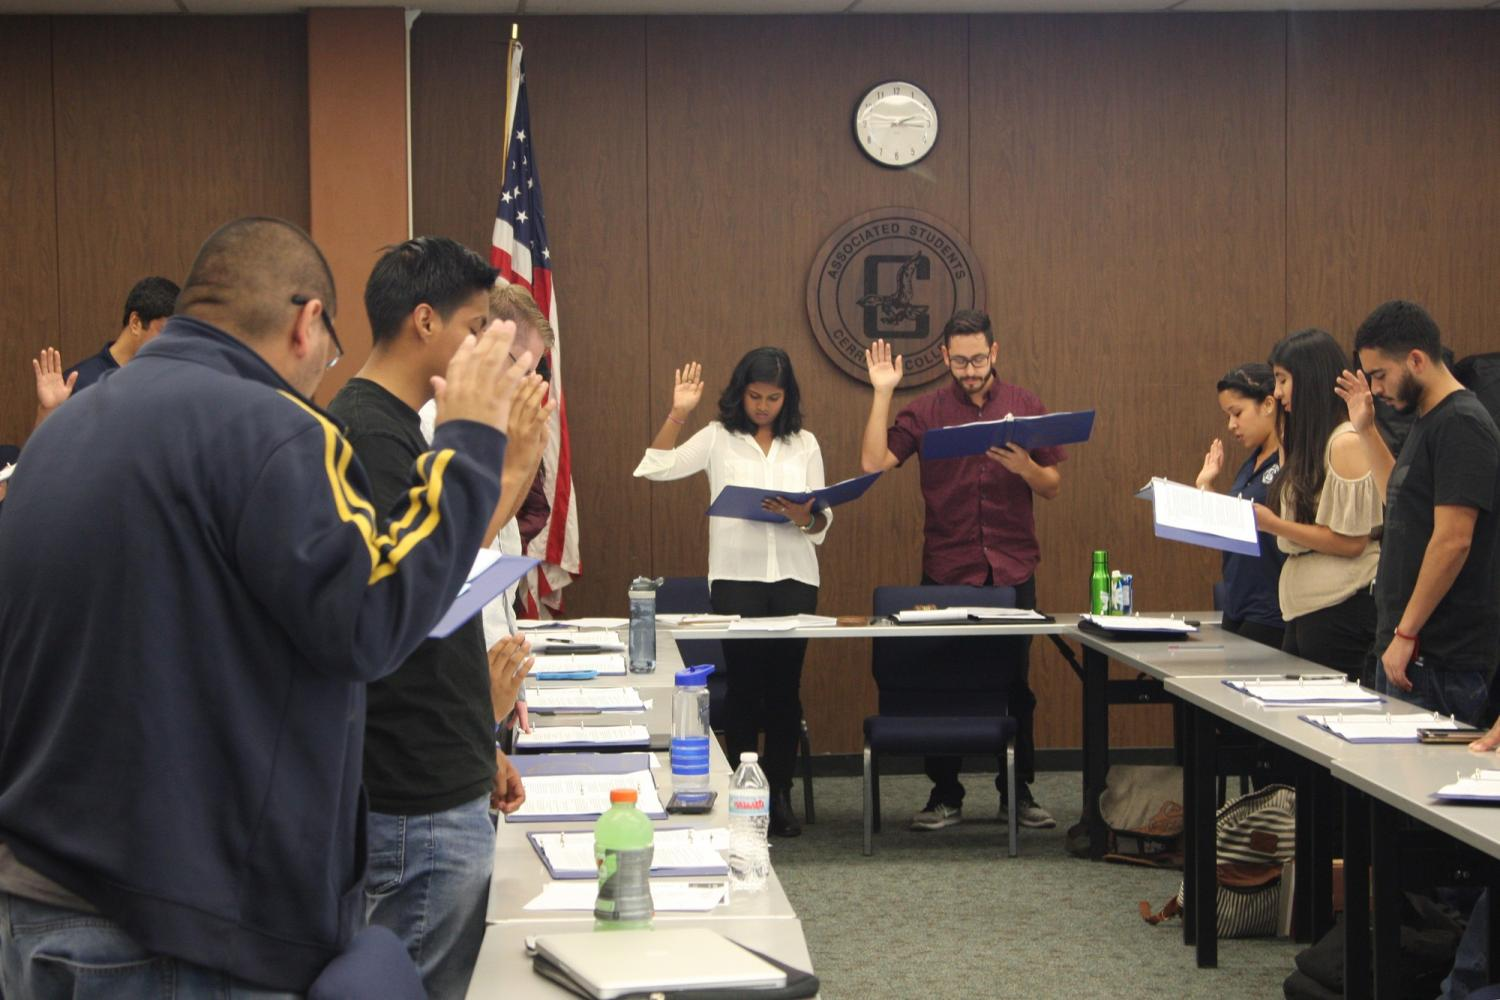 Newly elected senators being sworn in for the positions. This was the first ASCC senate meeting of 2017-2018. Photo credit: David Jenkins